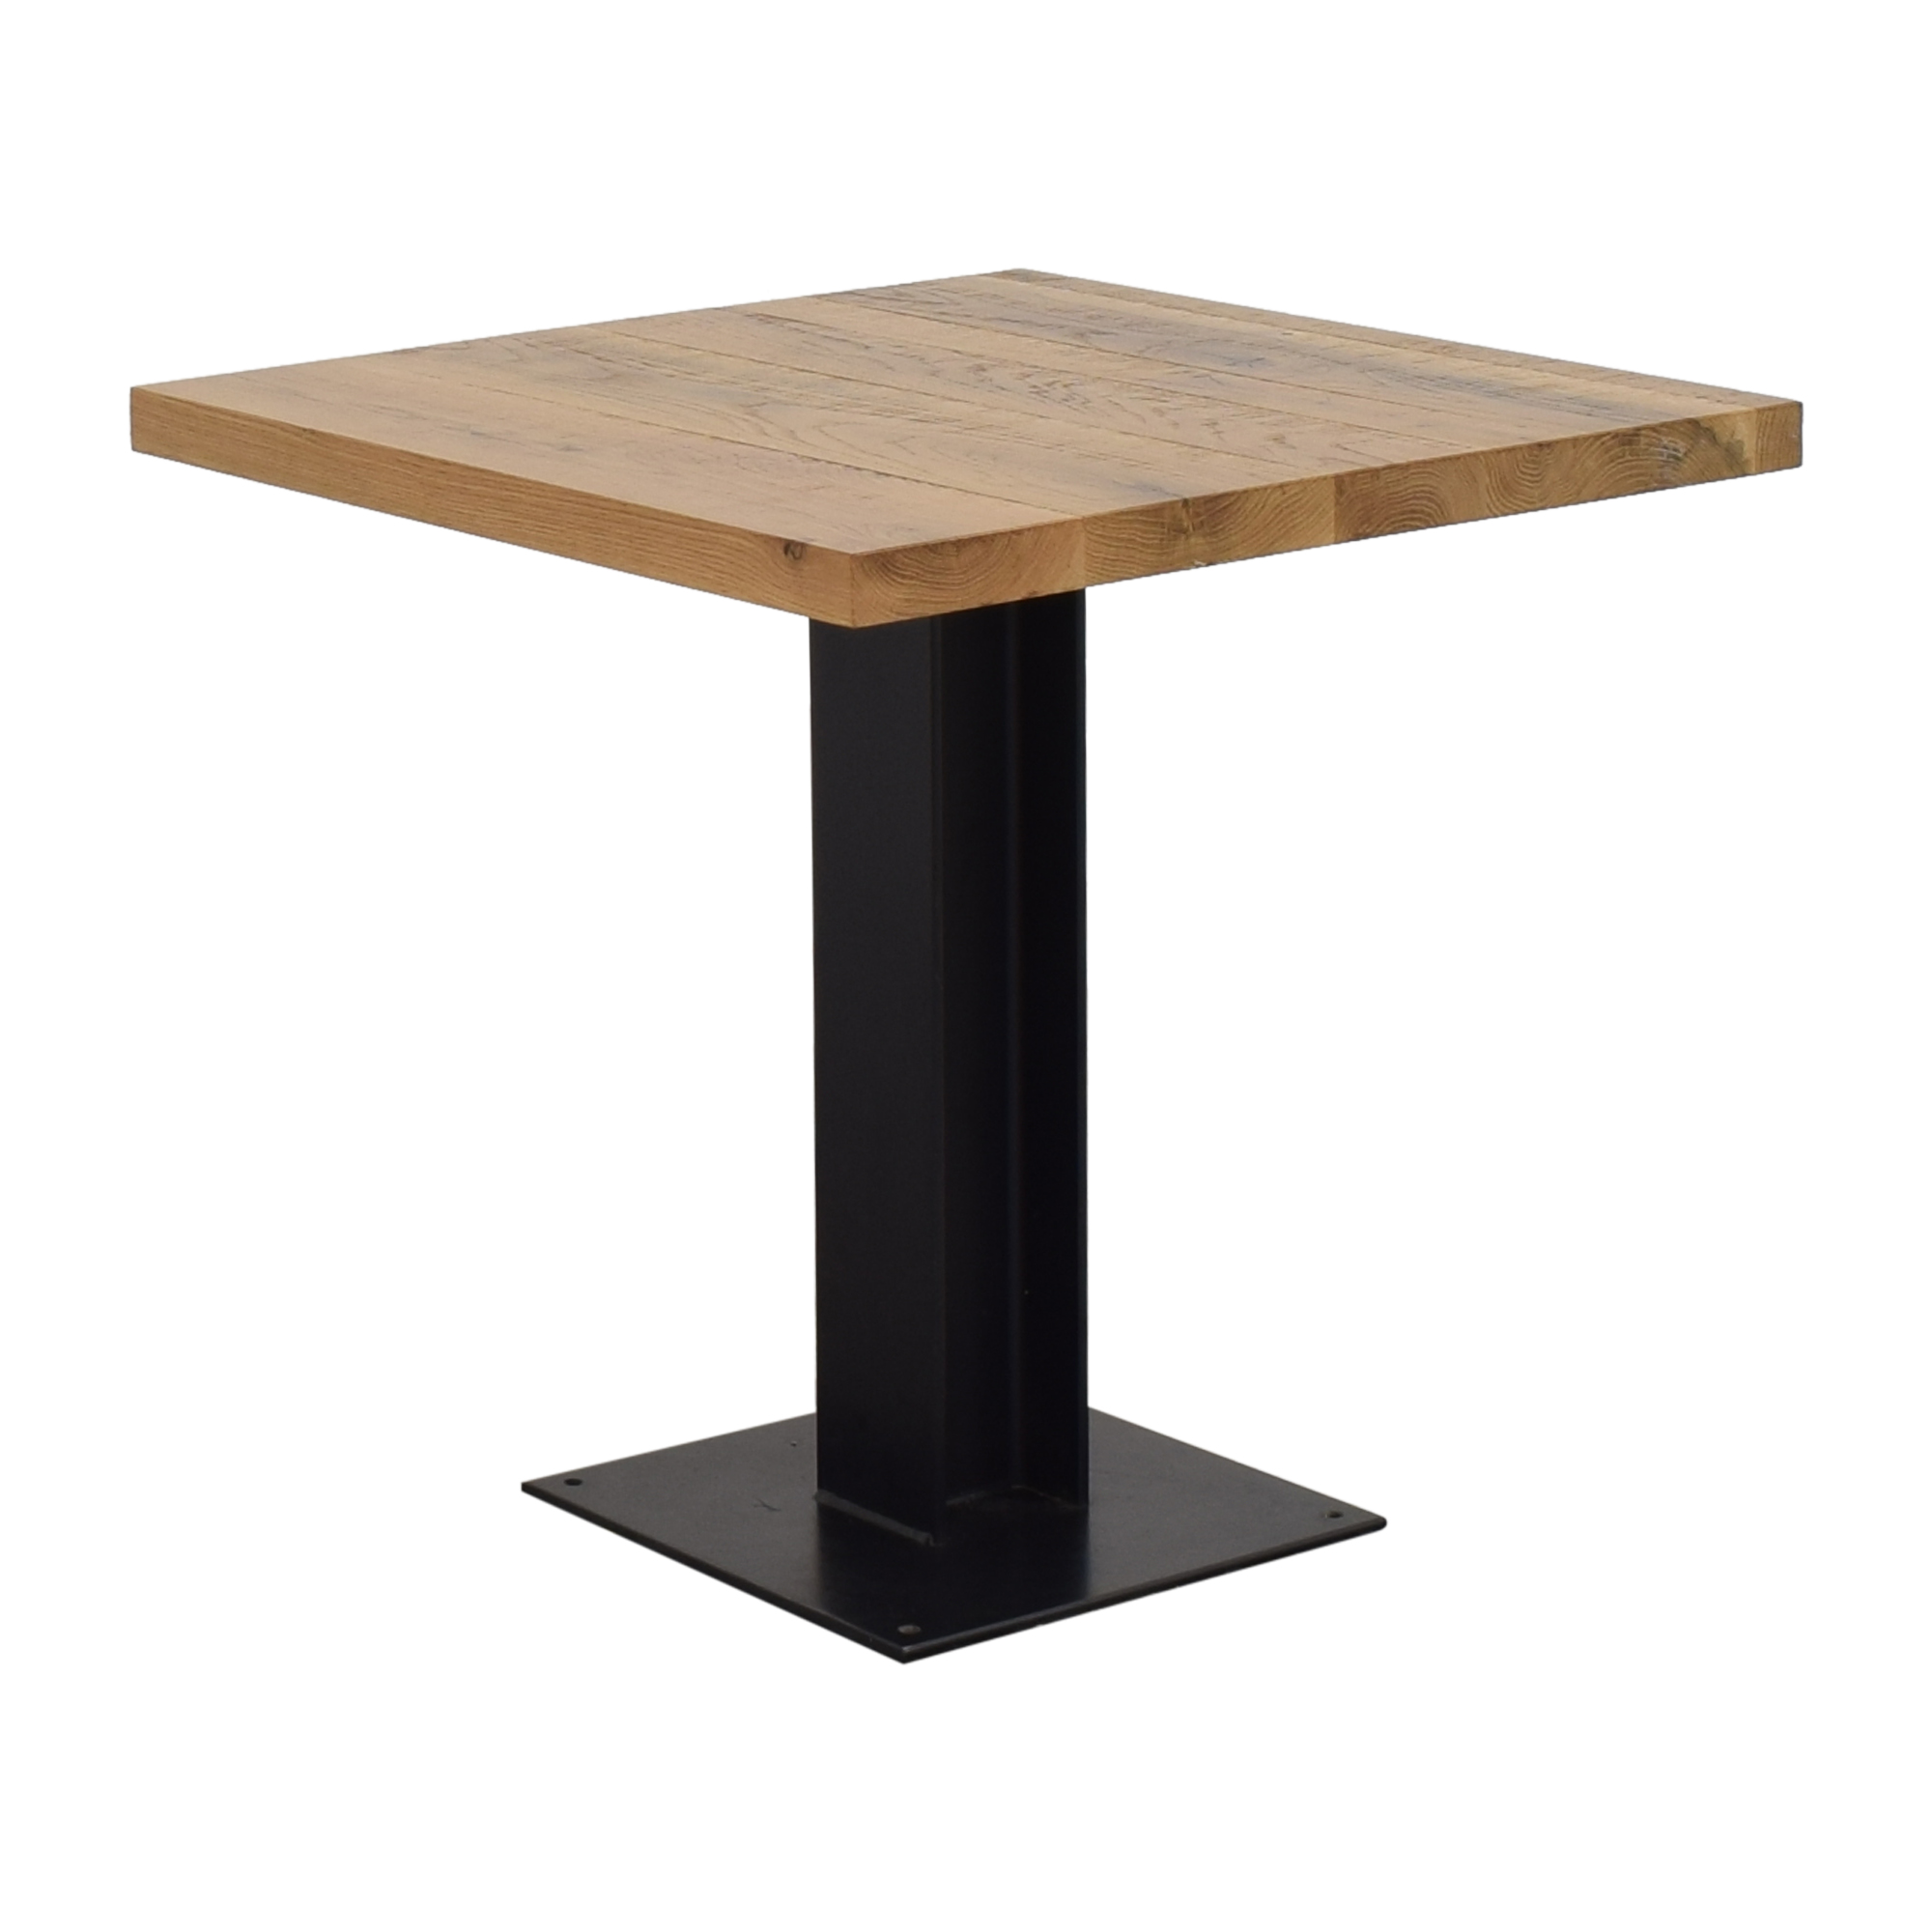 Crow Works Fixed I-Beam Square Table Crow Works